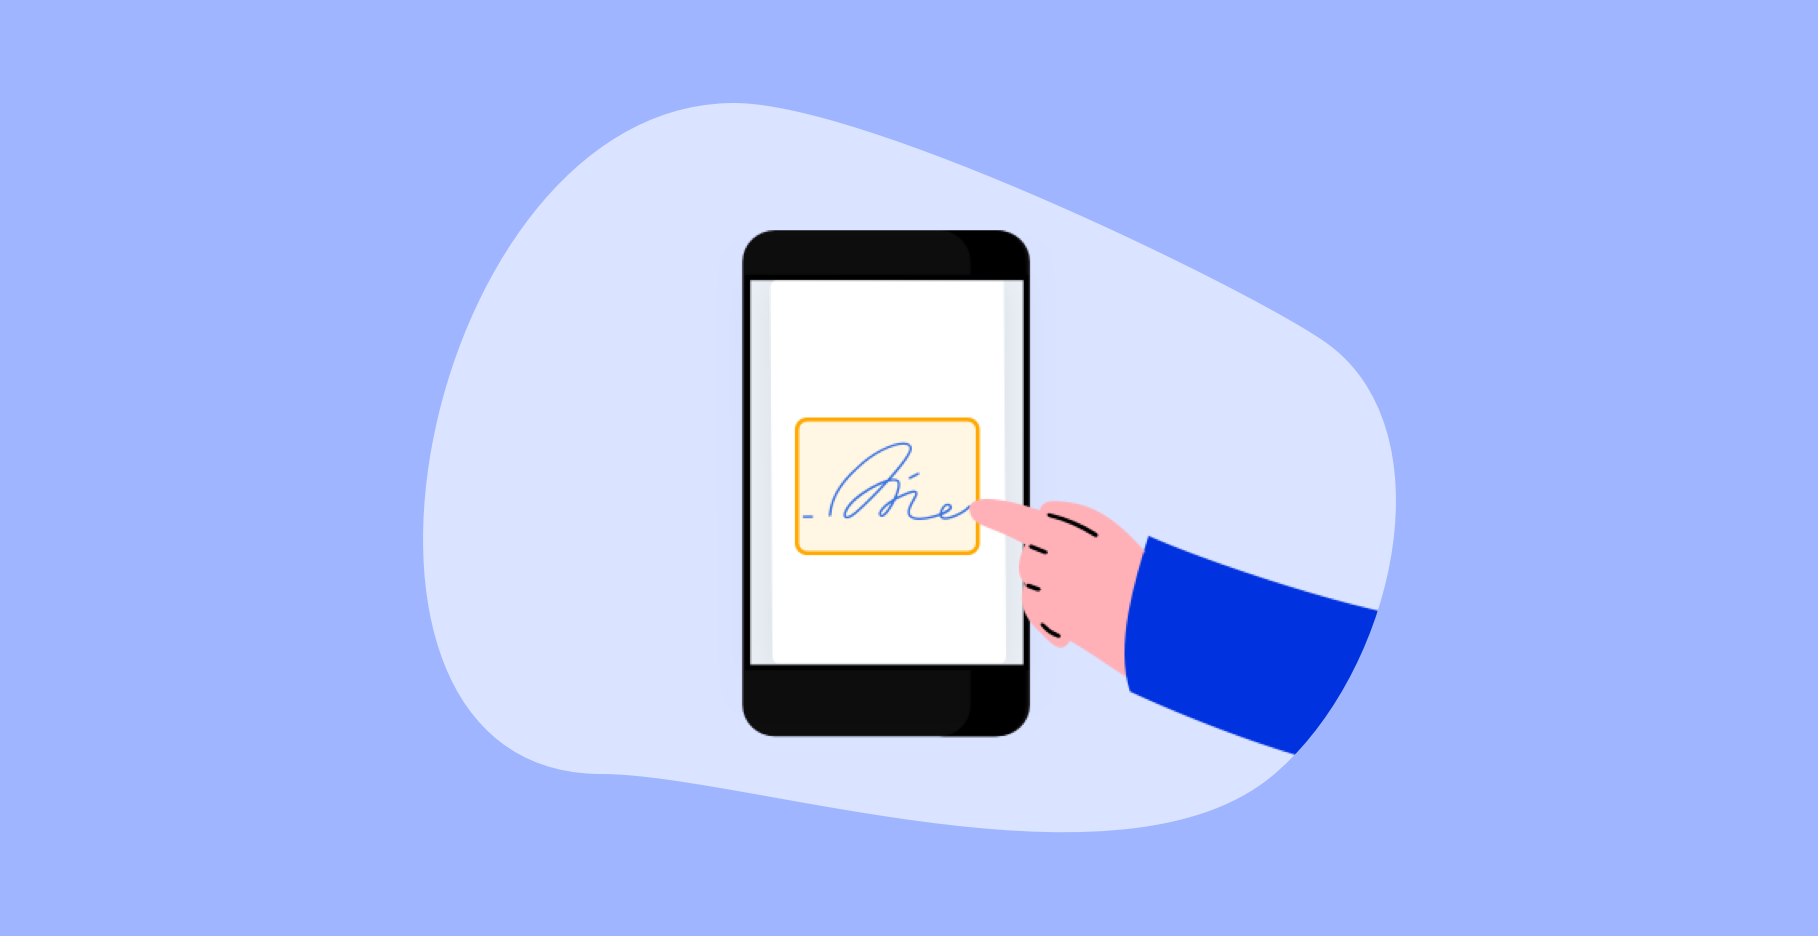 How to send a SignRequest with your smartphone